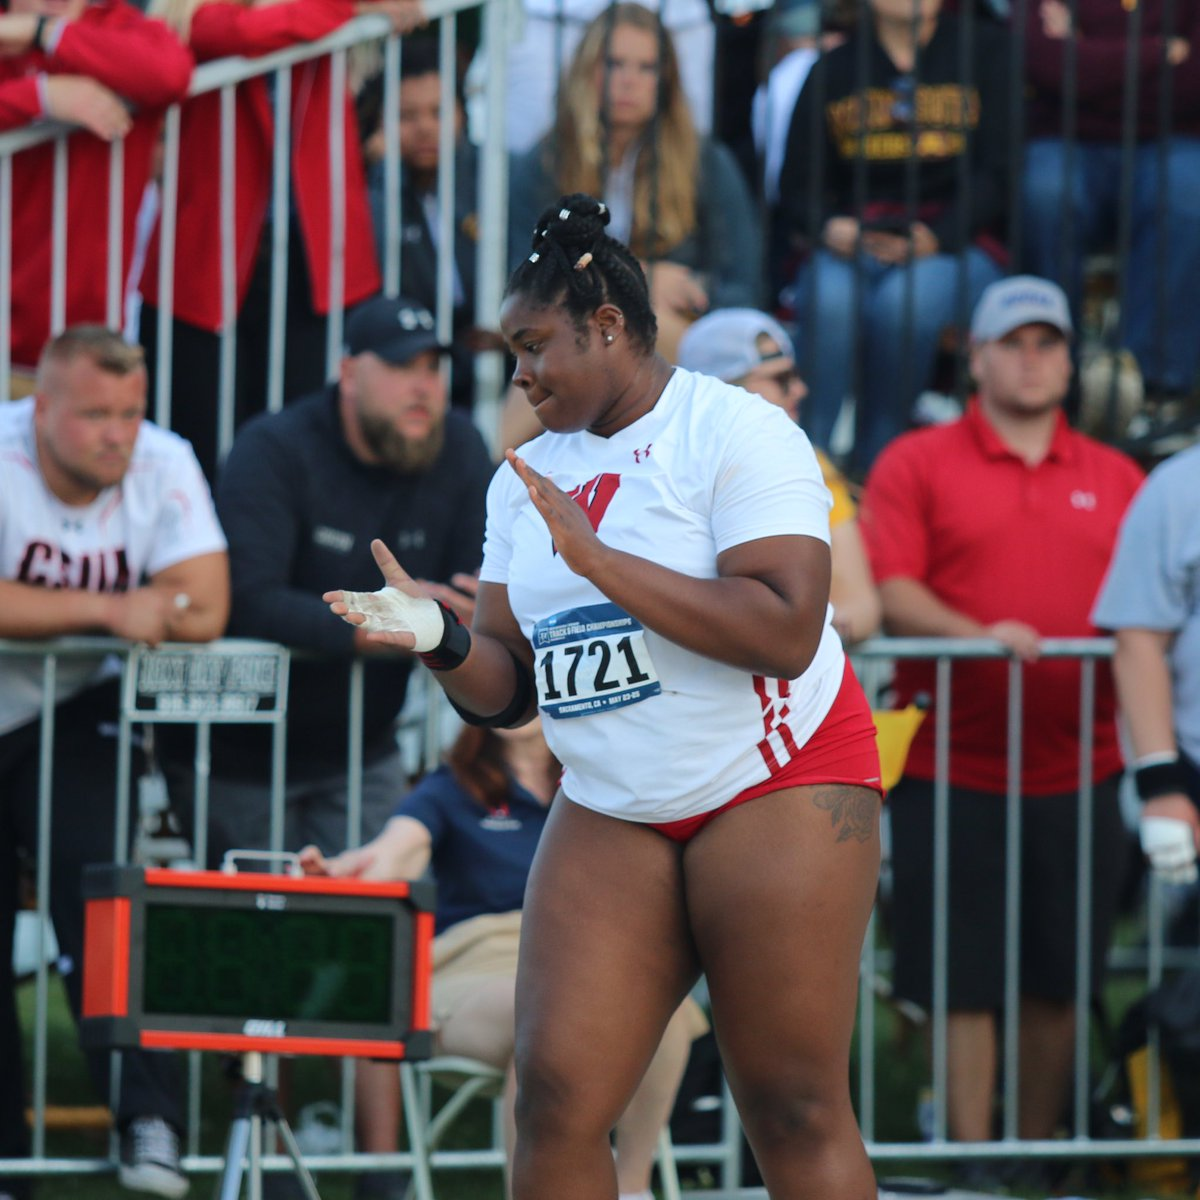 👏👏👏 Banke with an improvement on her second throw with a heave of 54-4 1/2, which moves her up to seventh. Top-12 advance to Austin